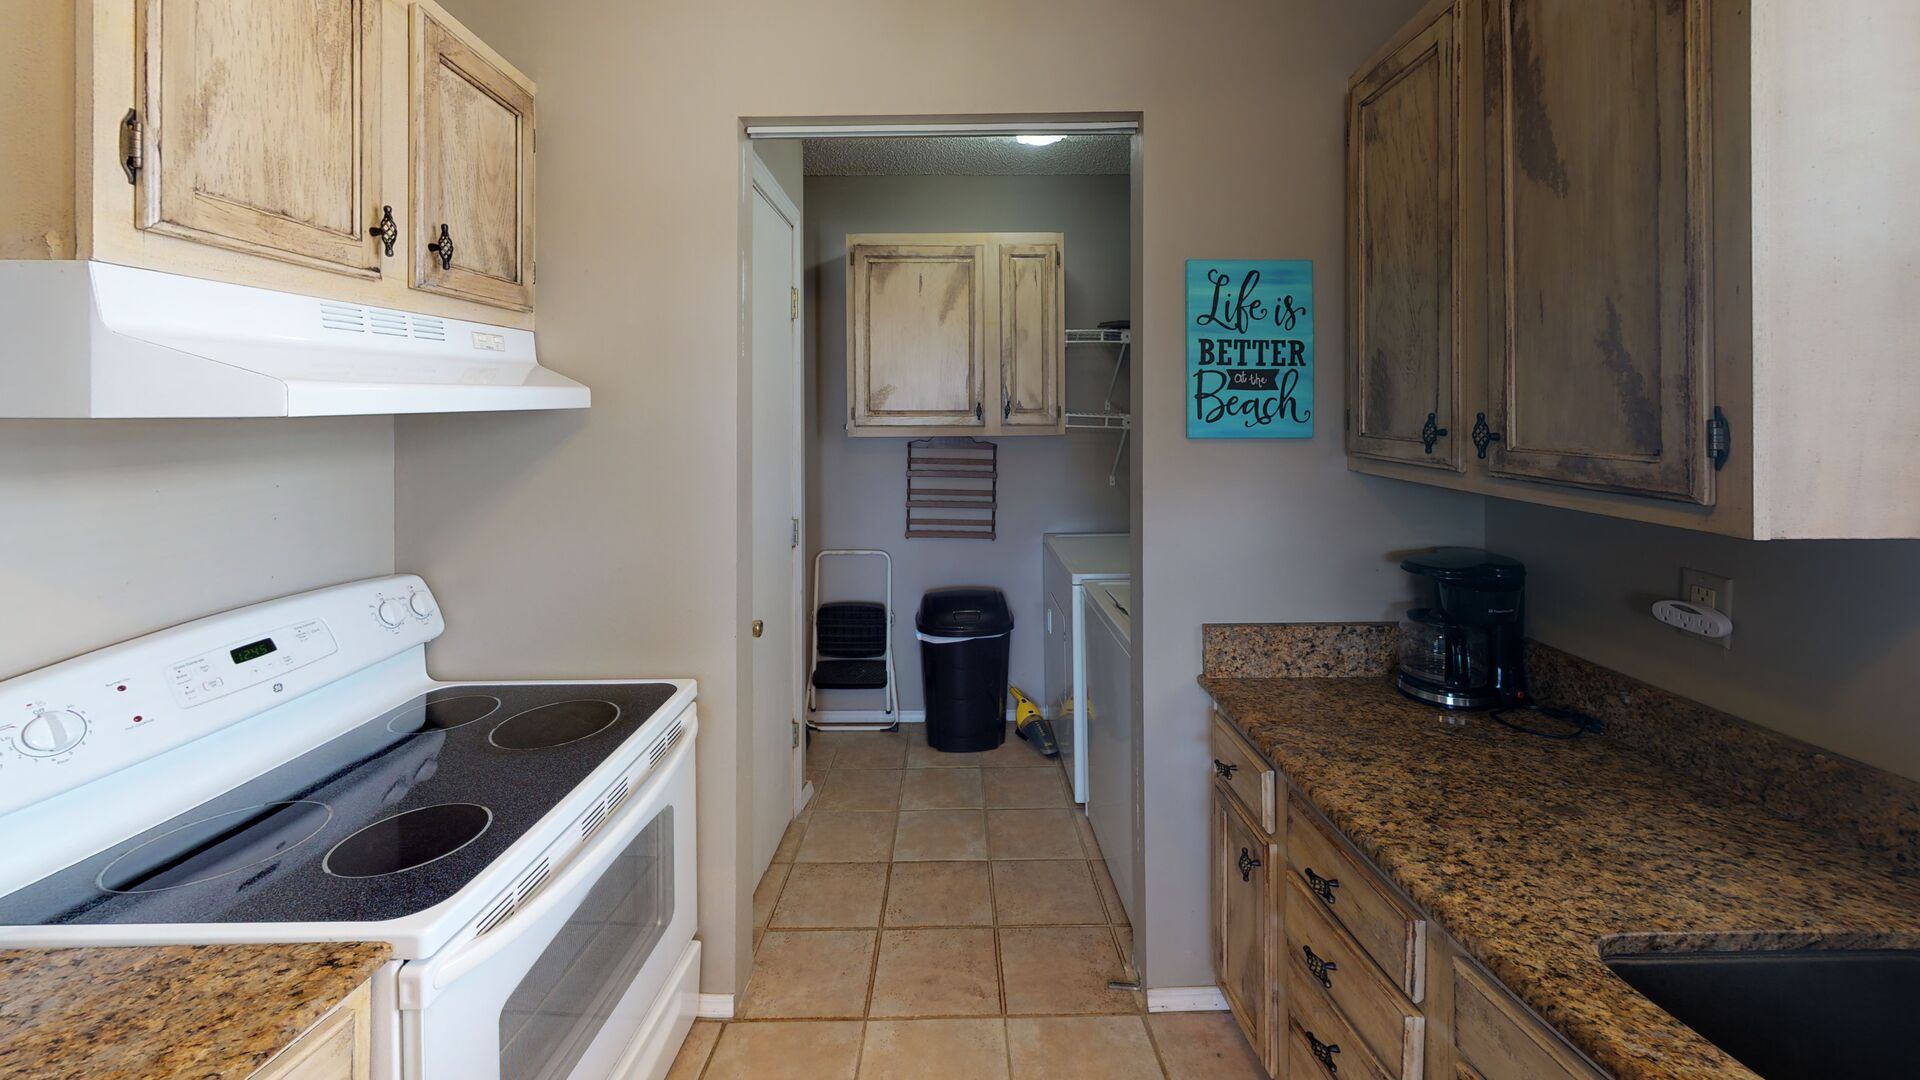 Kitchen with Coffee Maker, and the Laundry Room.